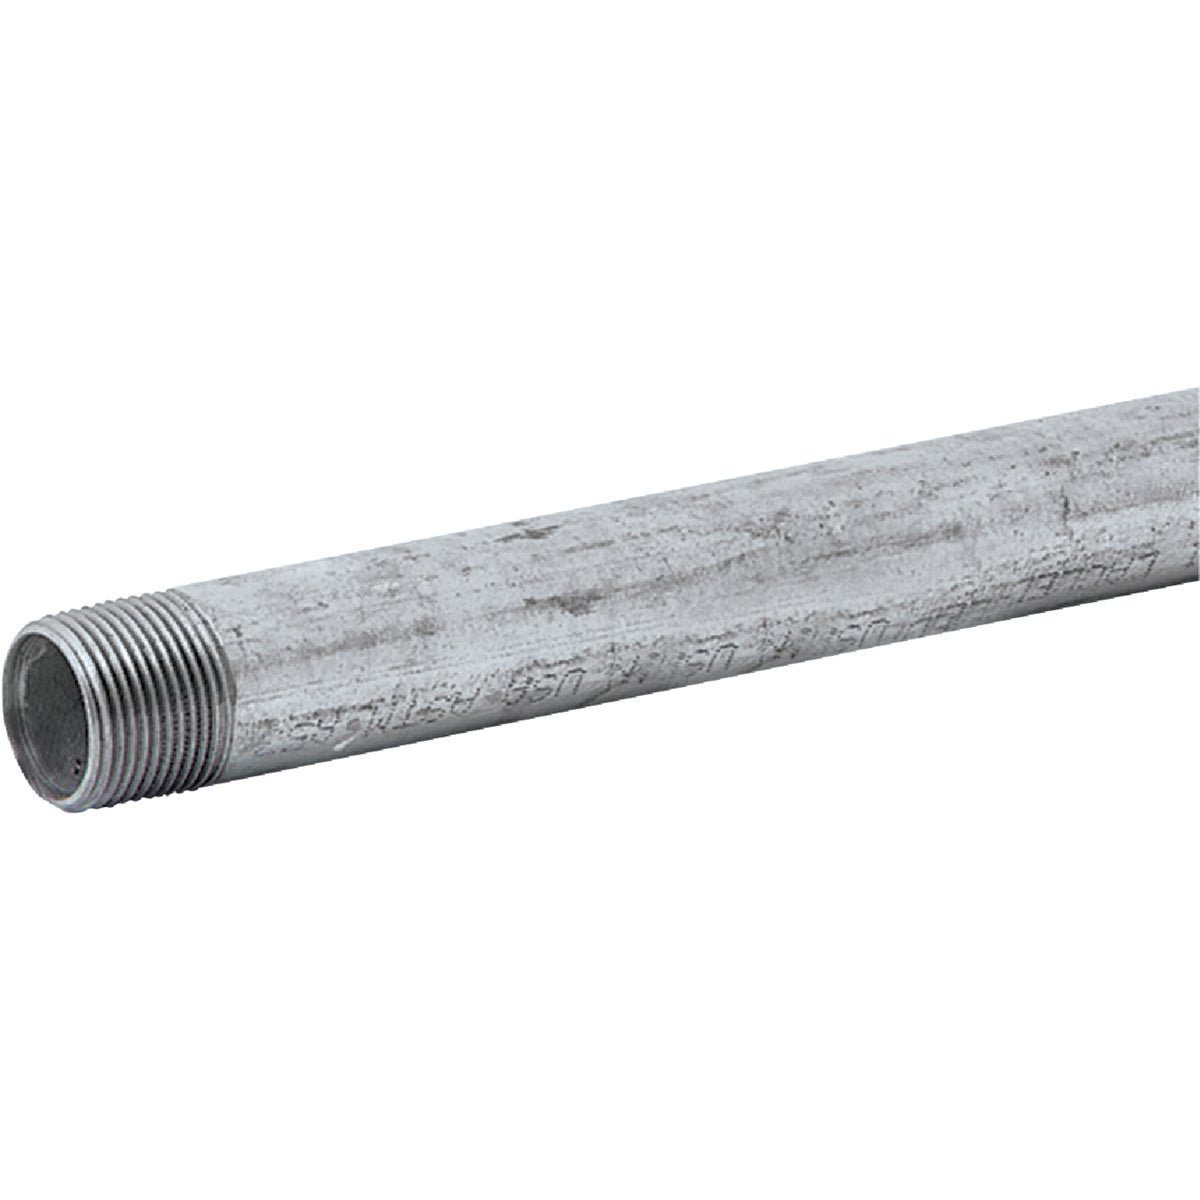 "1/4""X10' GALV PIPE - 10224 by Southland Pipe"